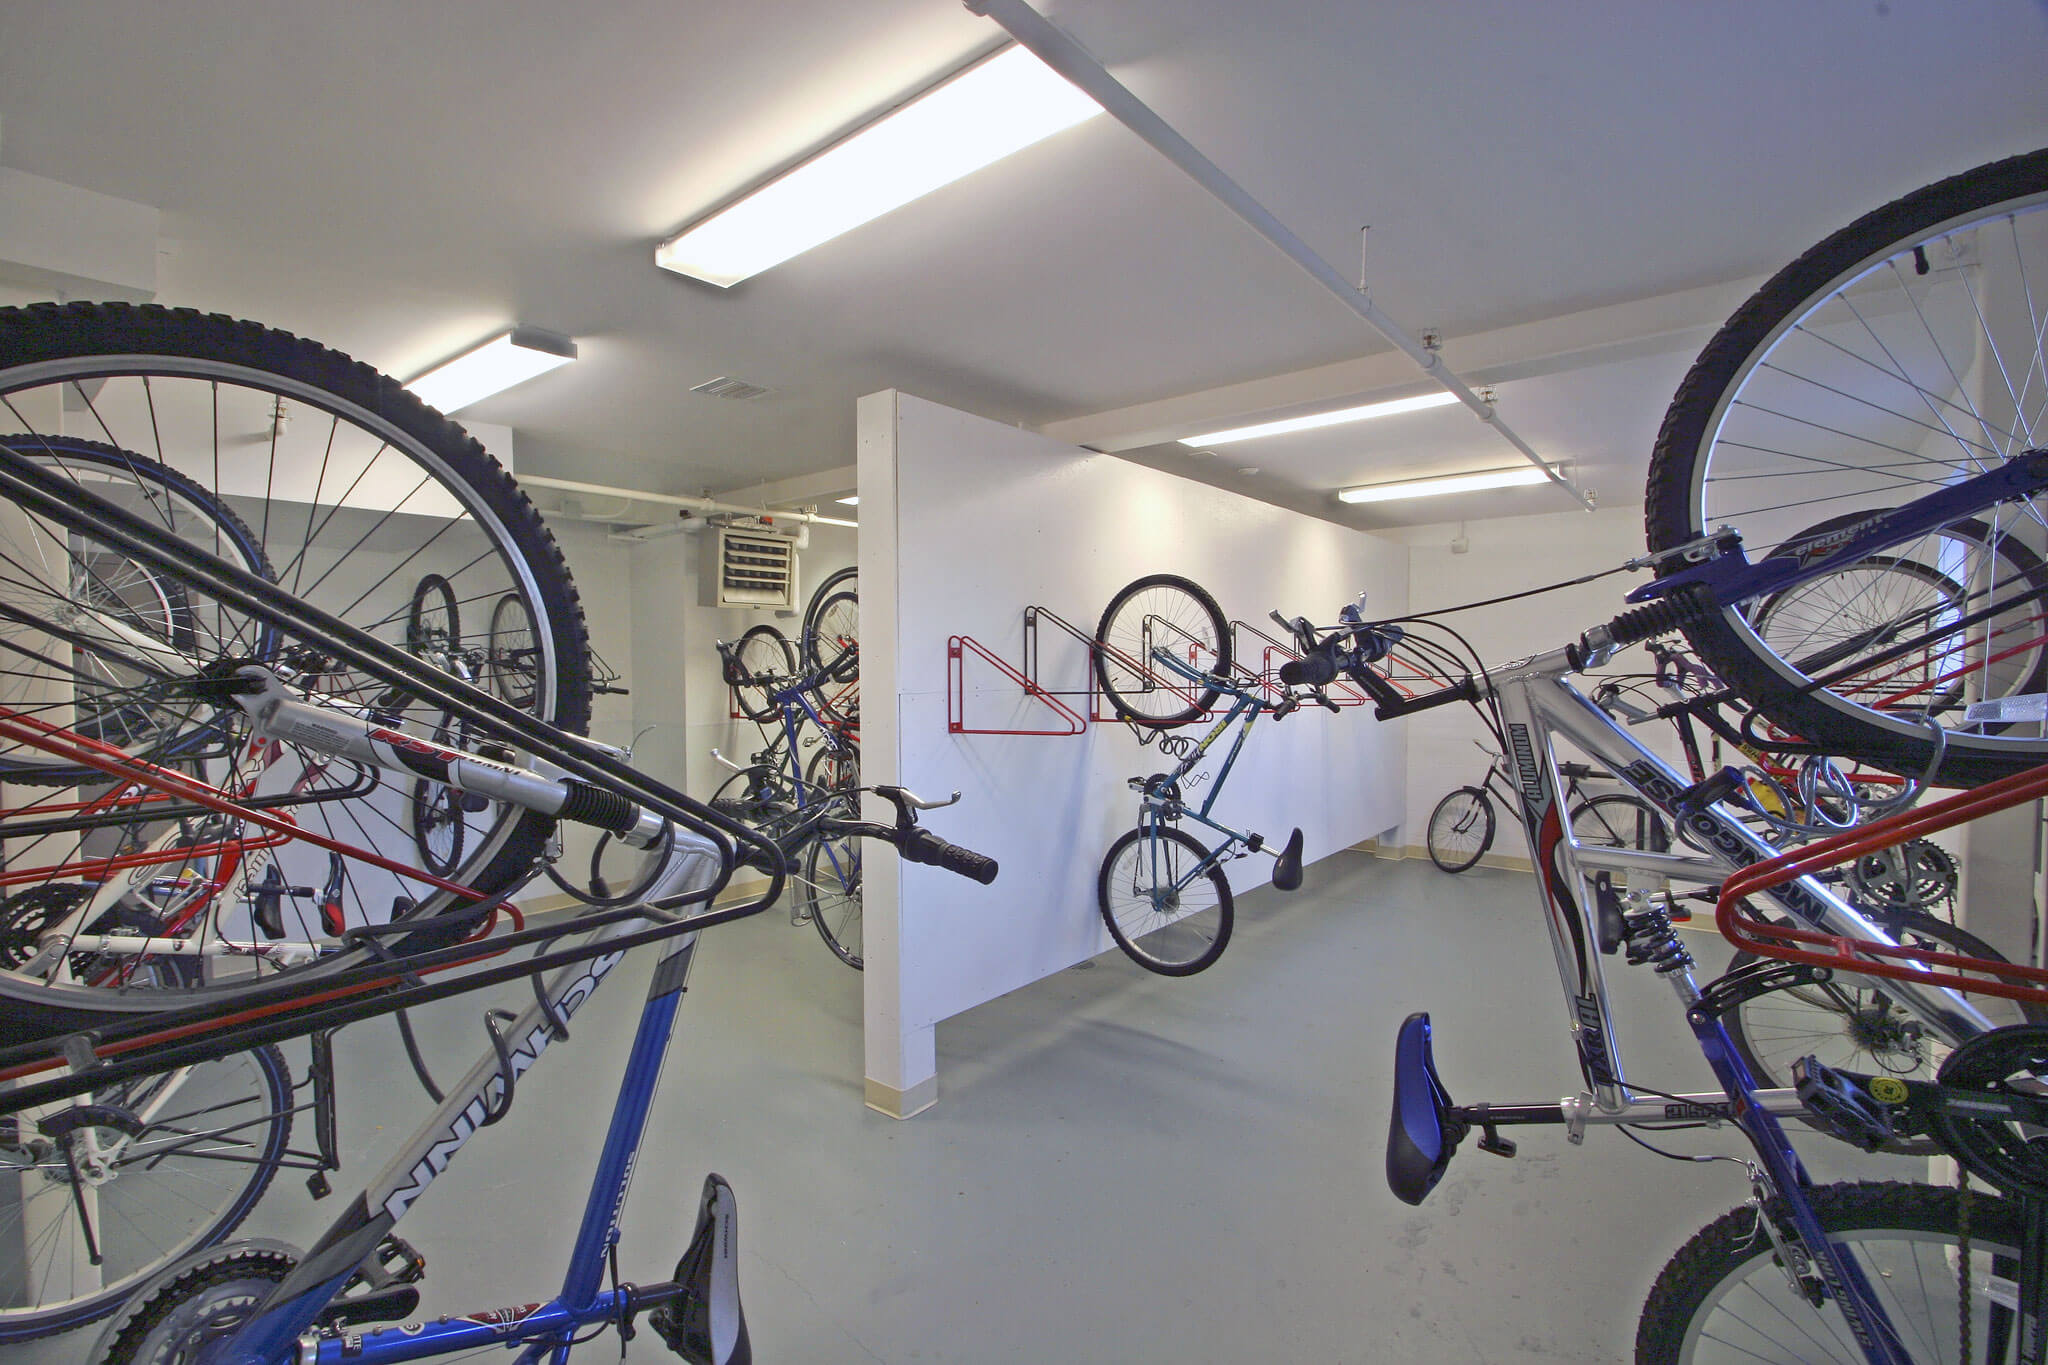 Bike Room with Bike Wall Racks at Wesleyan University